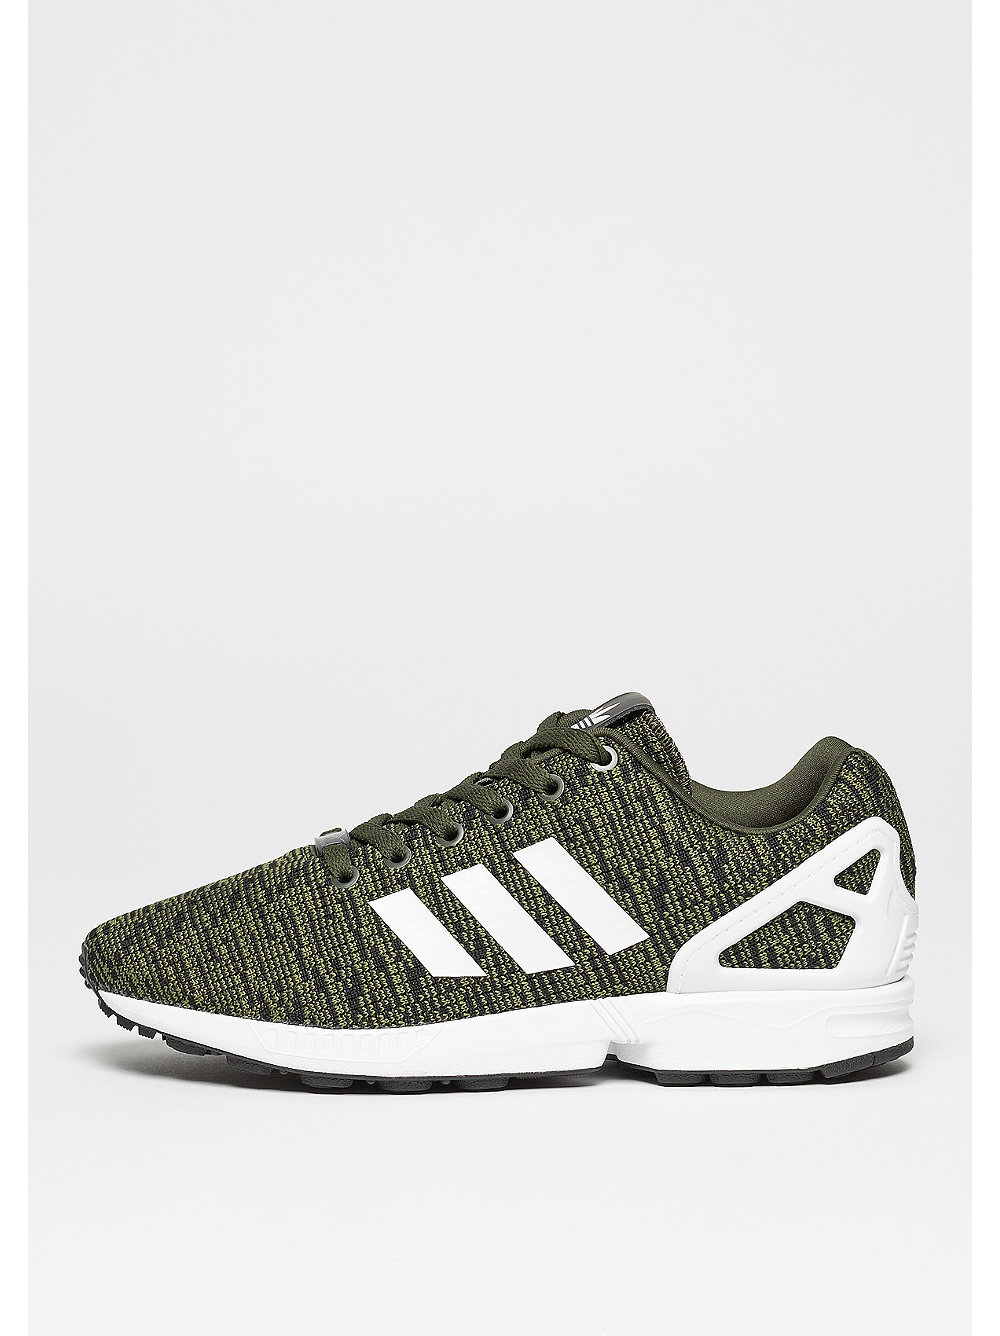 adidas ZX Flux core black-core black-white